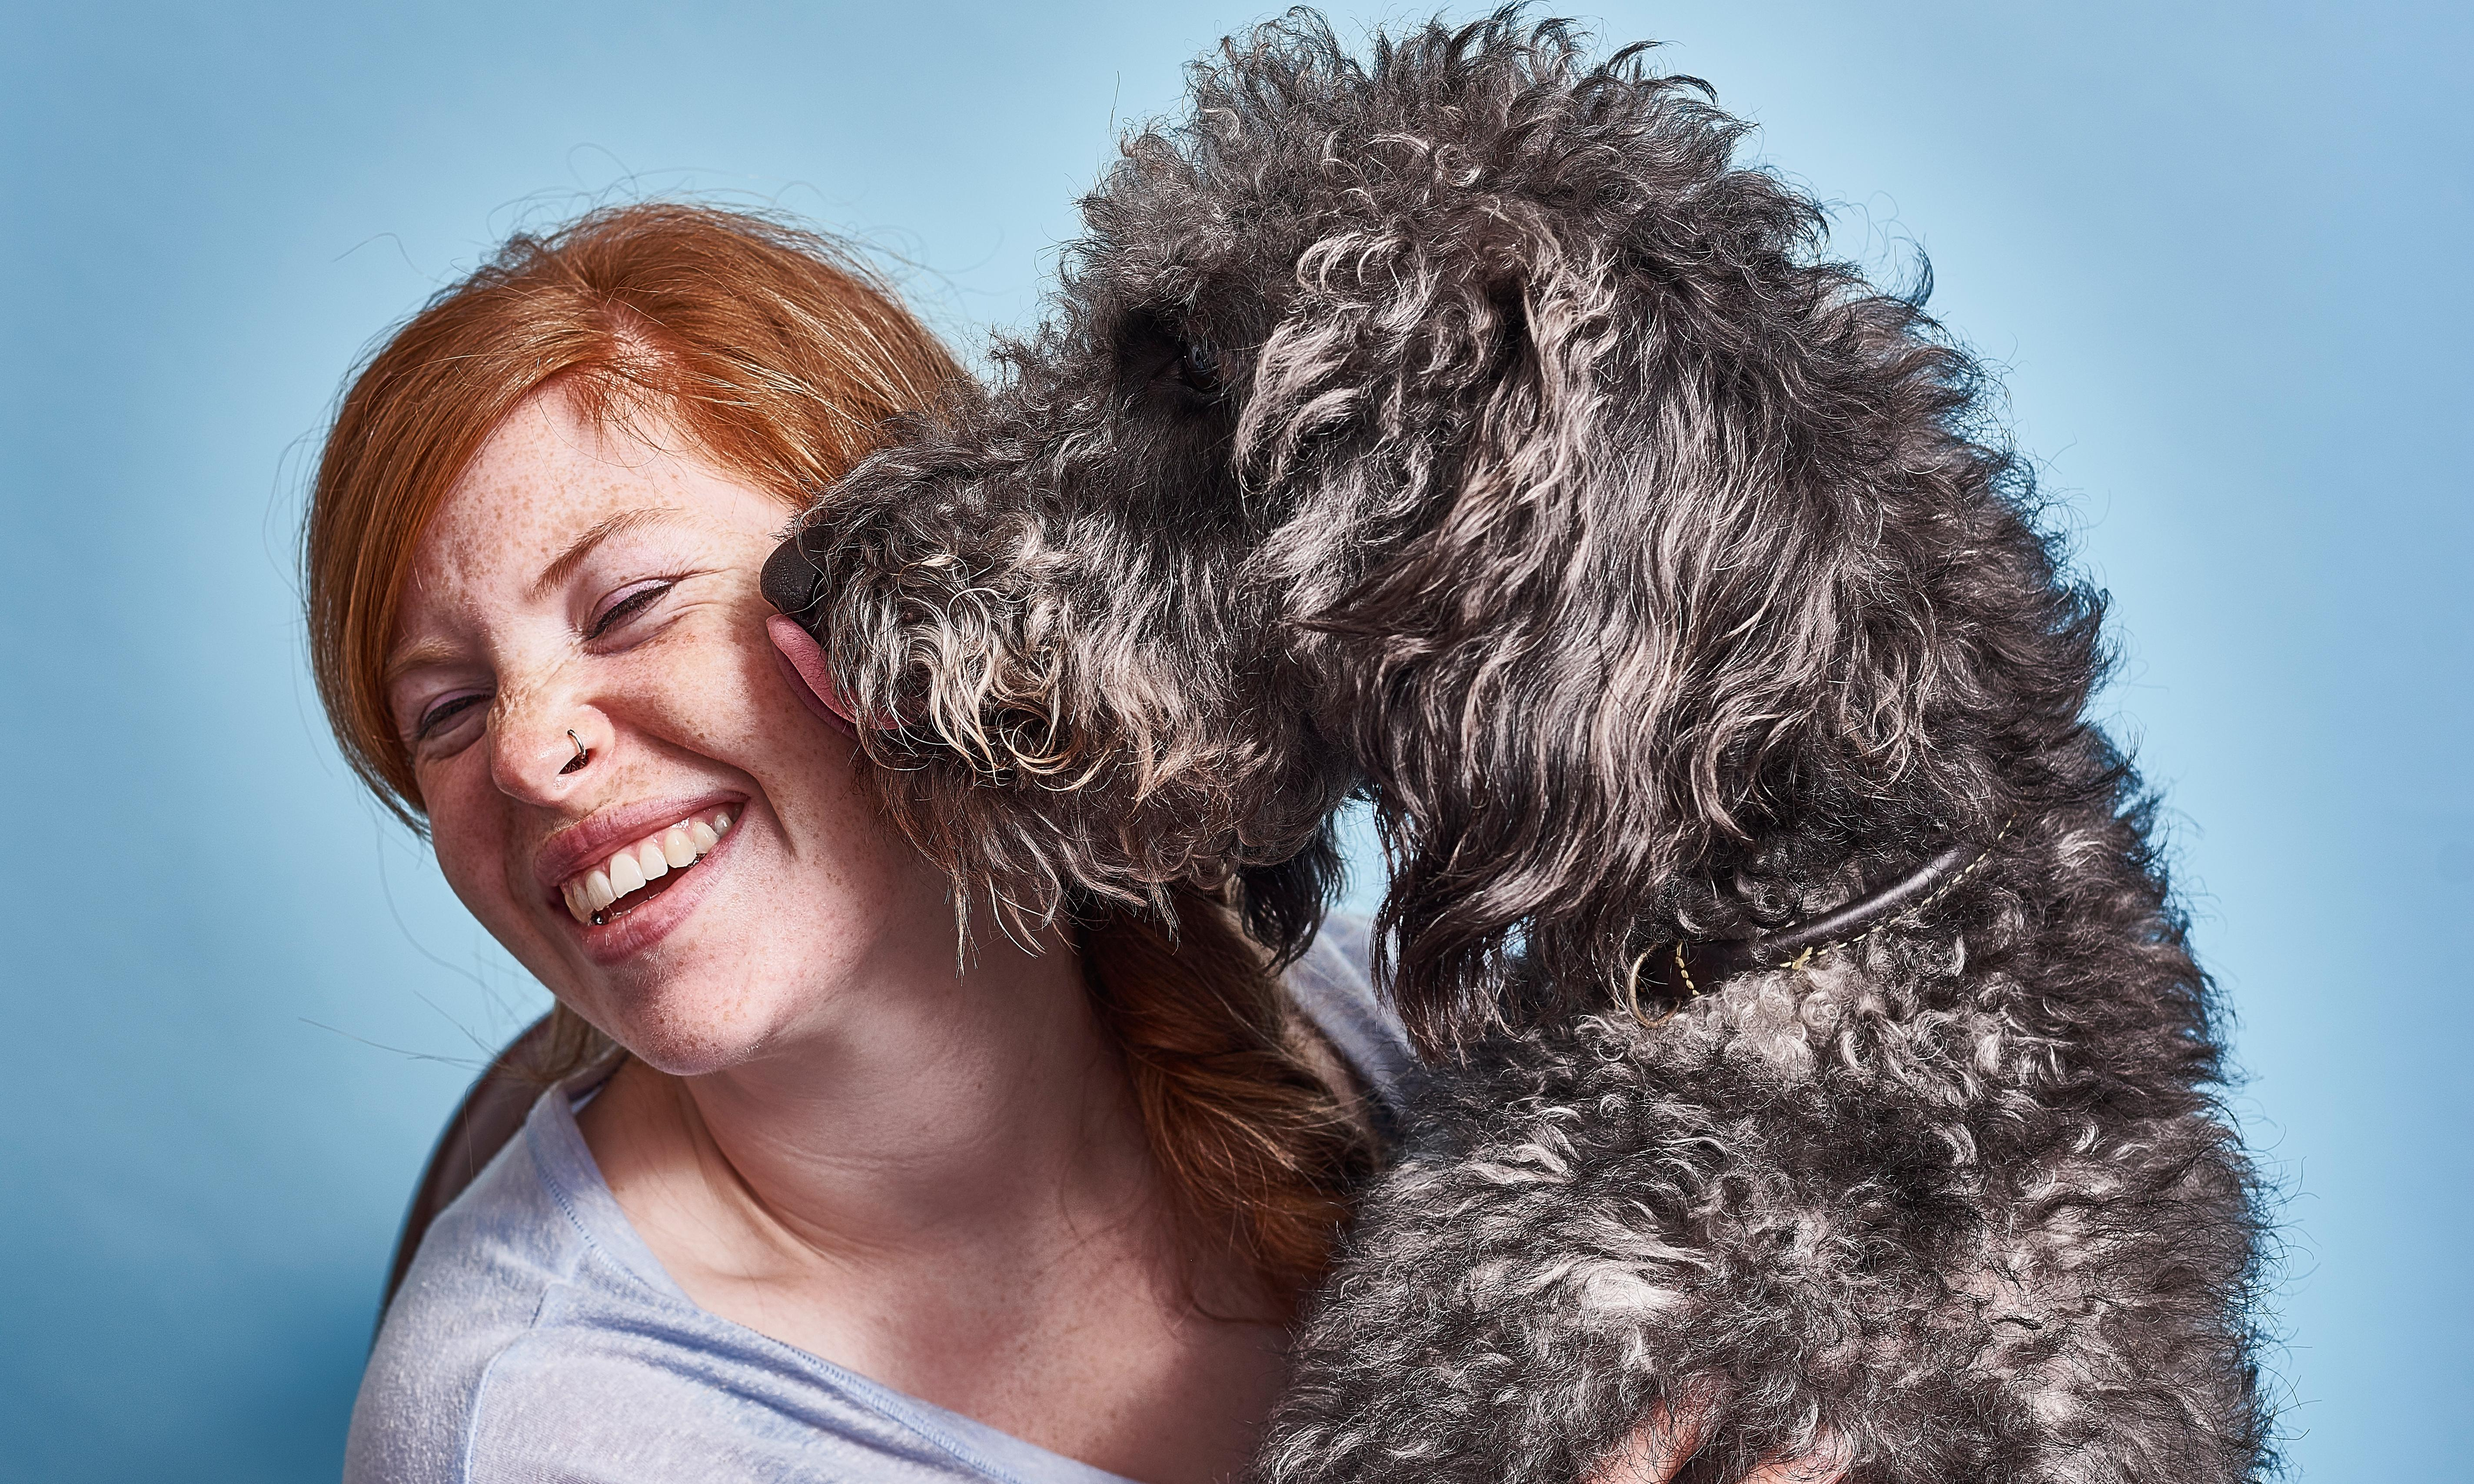 Are pets really good for us – or just hairy health hazards?